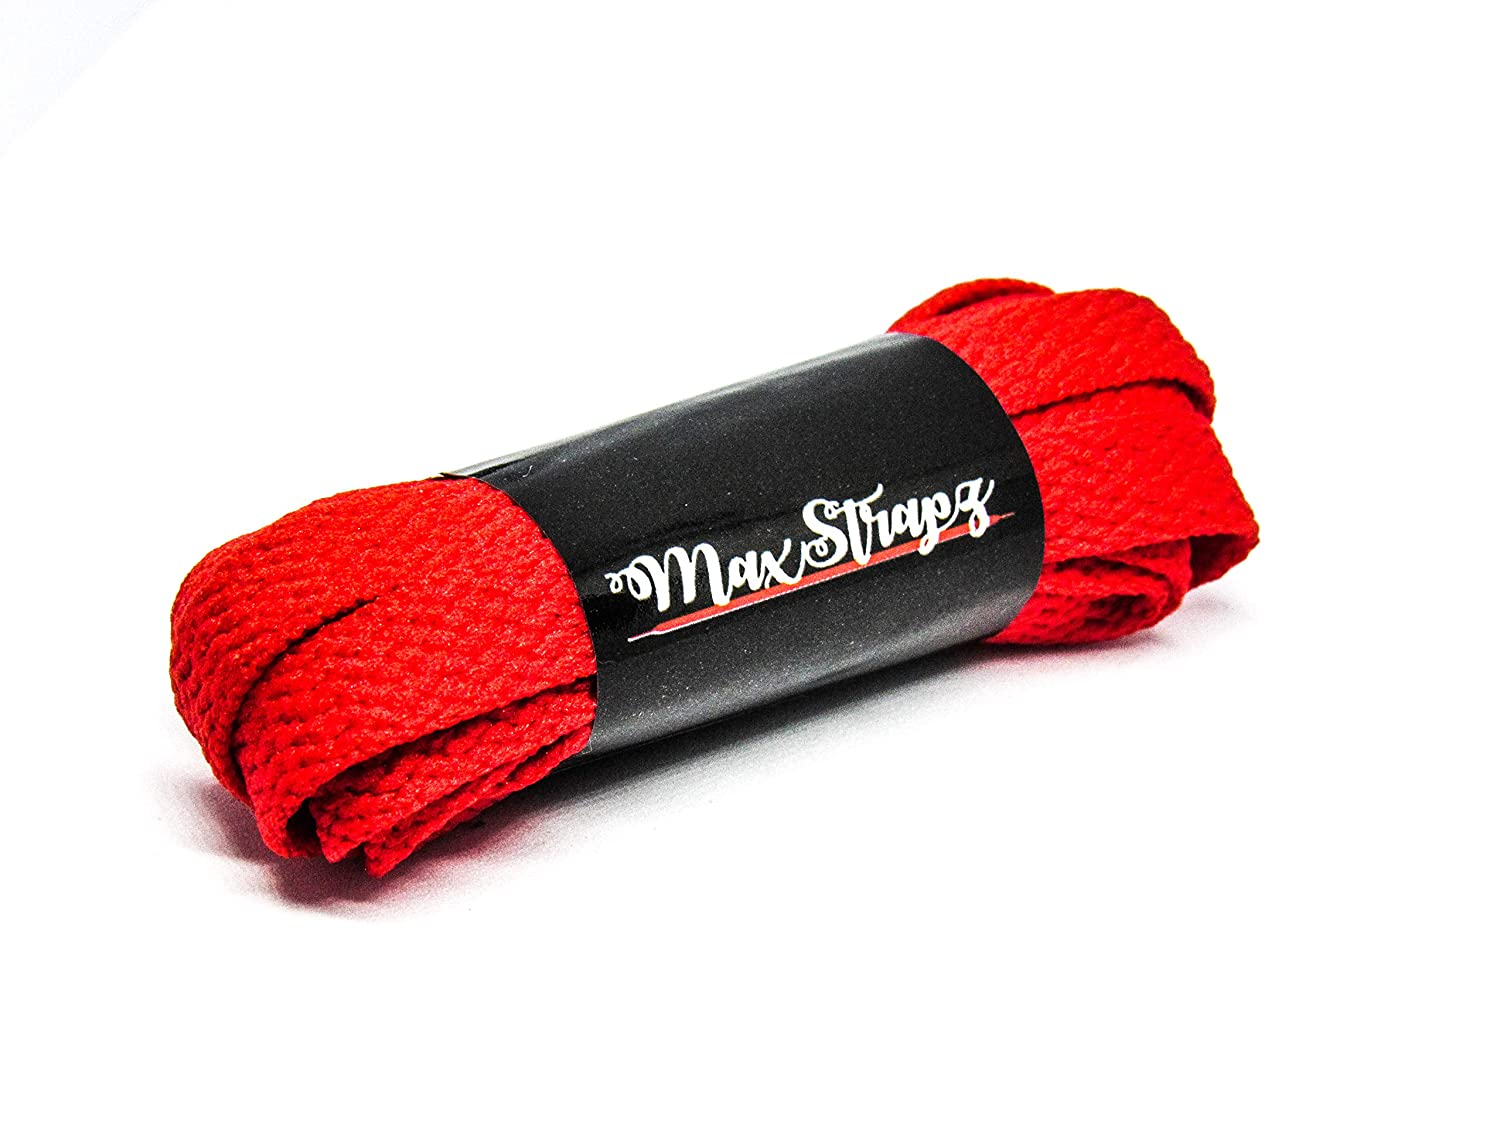 Big Wide Shoelaces 10mm and 15mm Fat Shoe laces for Skate shoes